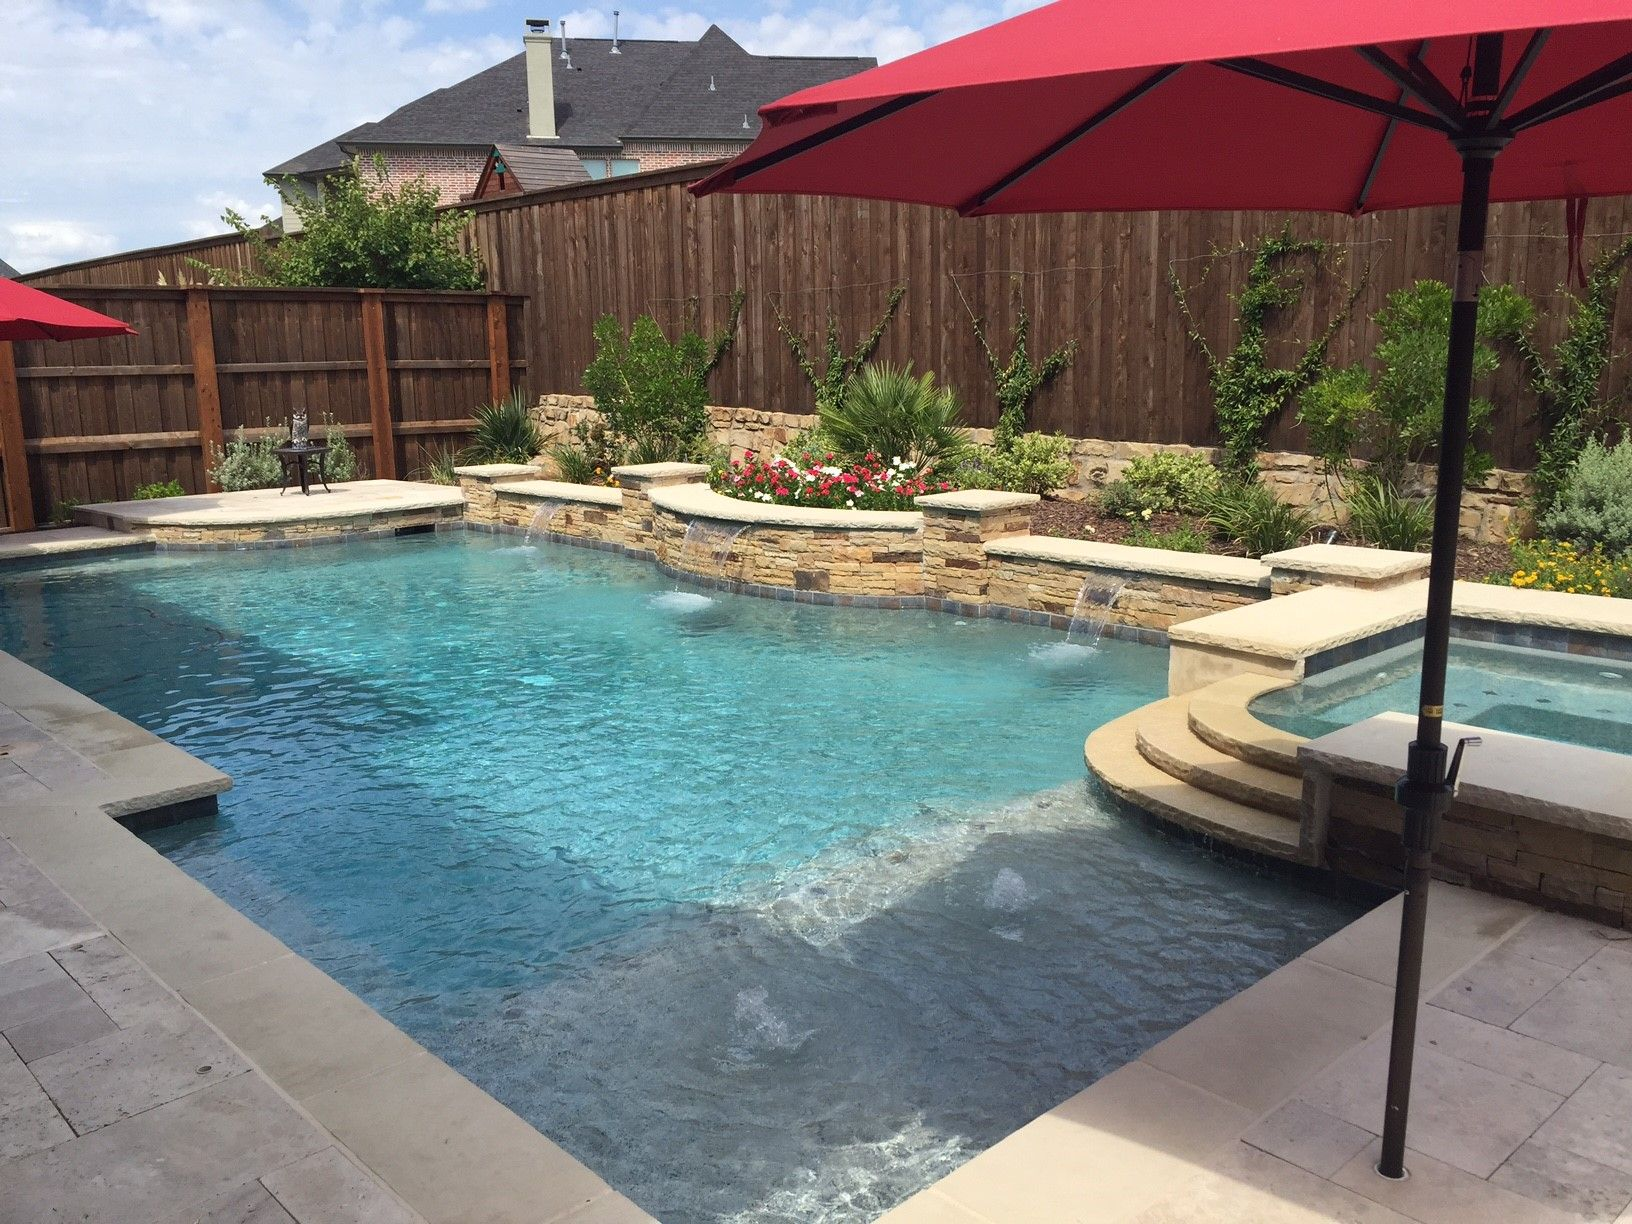 Dallas formal pools rockwall custom pool formal pool Pool design plans